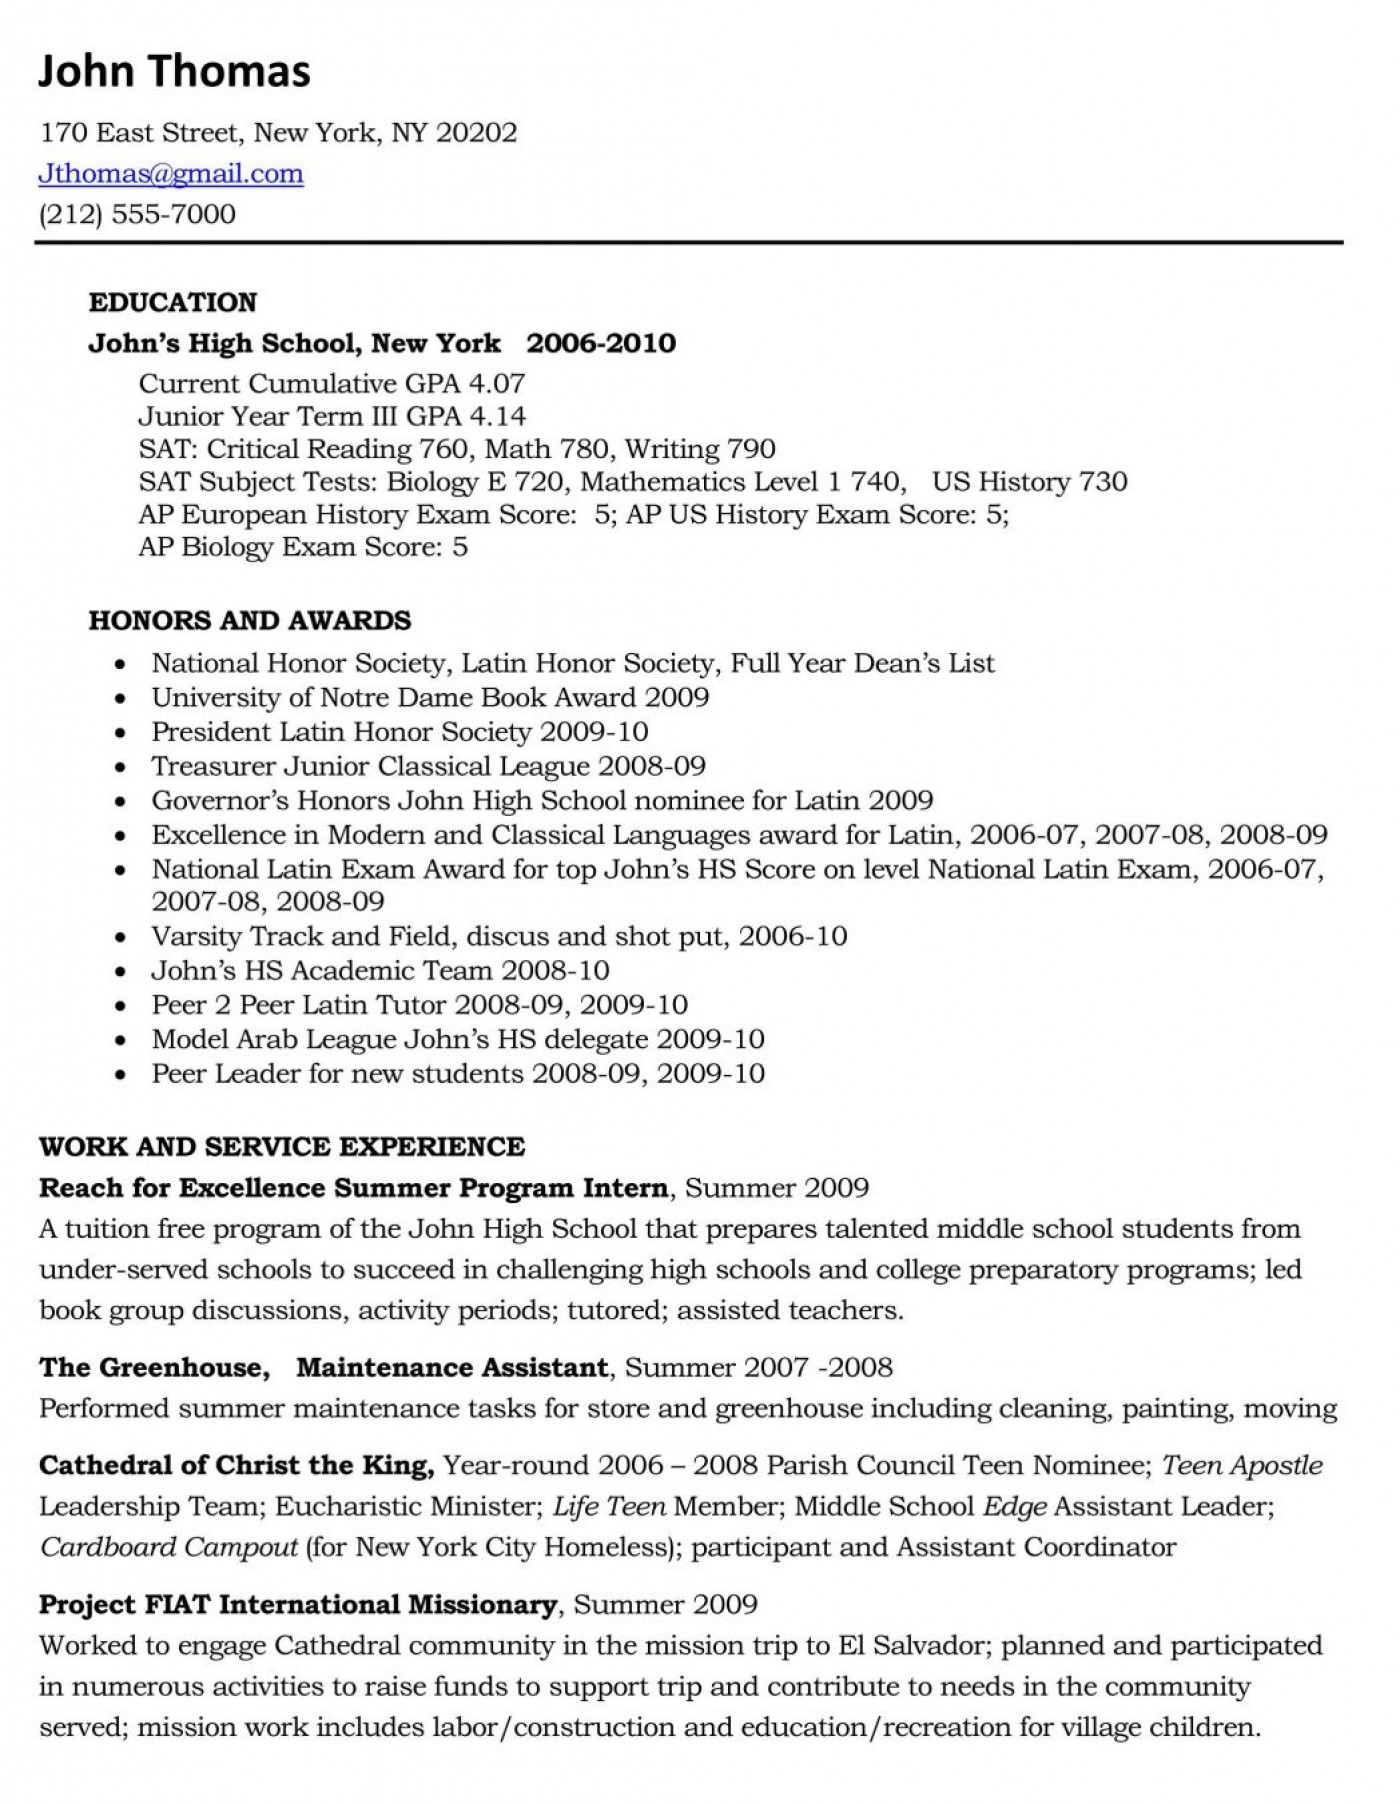 008 Essay On Texting Resume Jpg Persuasive While Driving Ou Outline And 1048x1351 Singular Essays Argumentative 1400